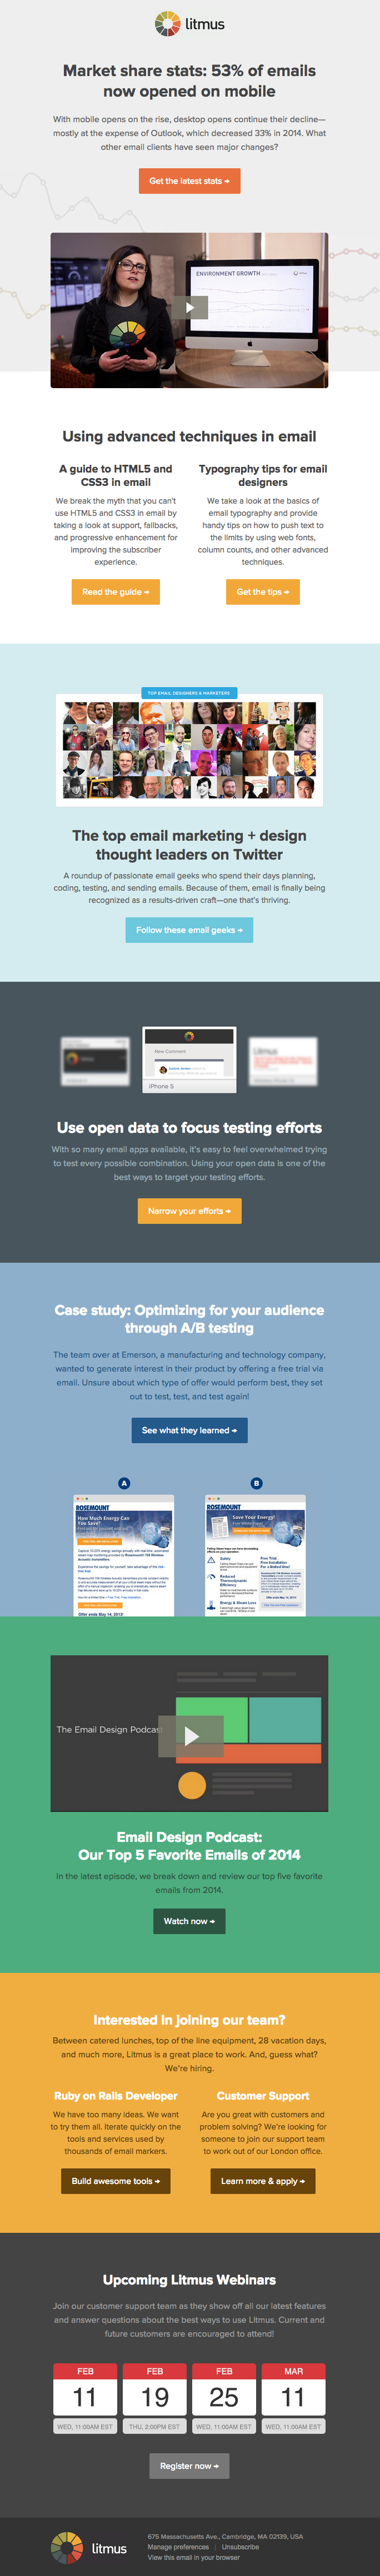 Litmus email with strong CTA and body copy design